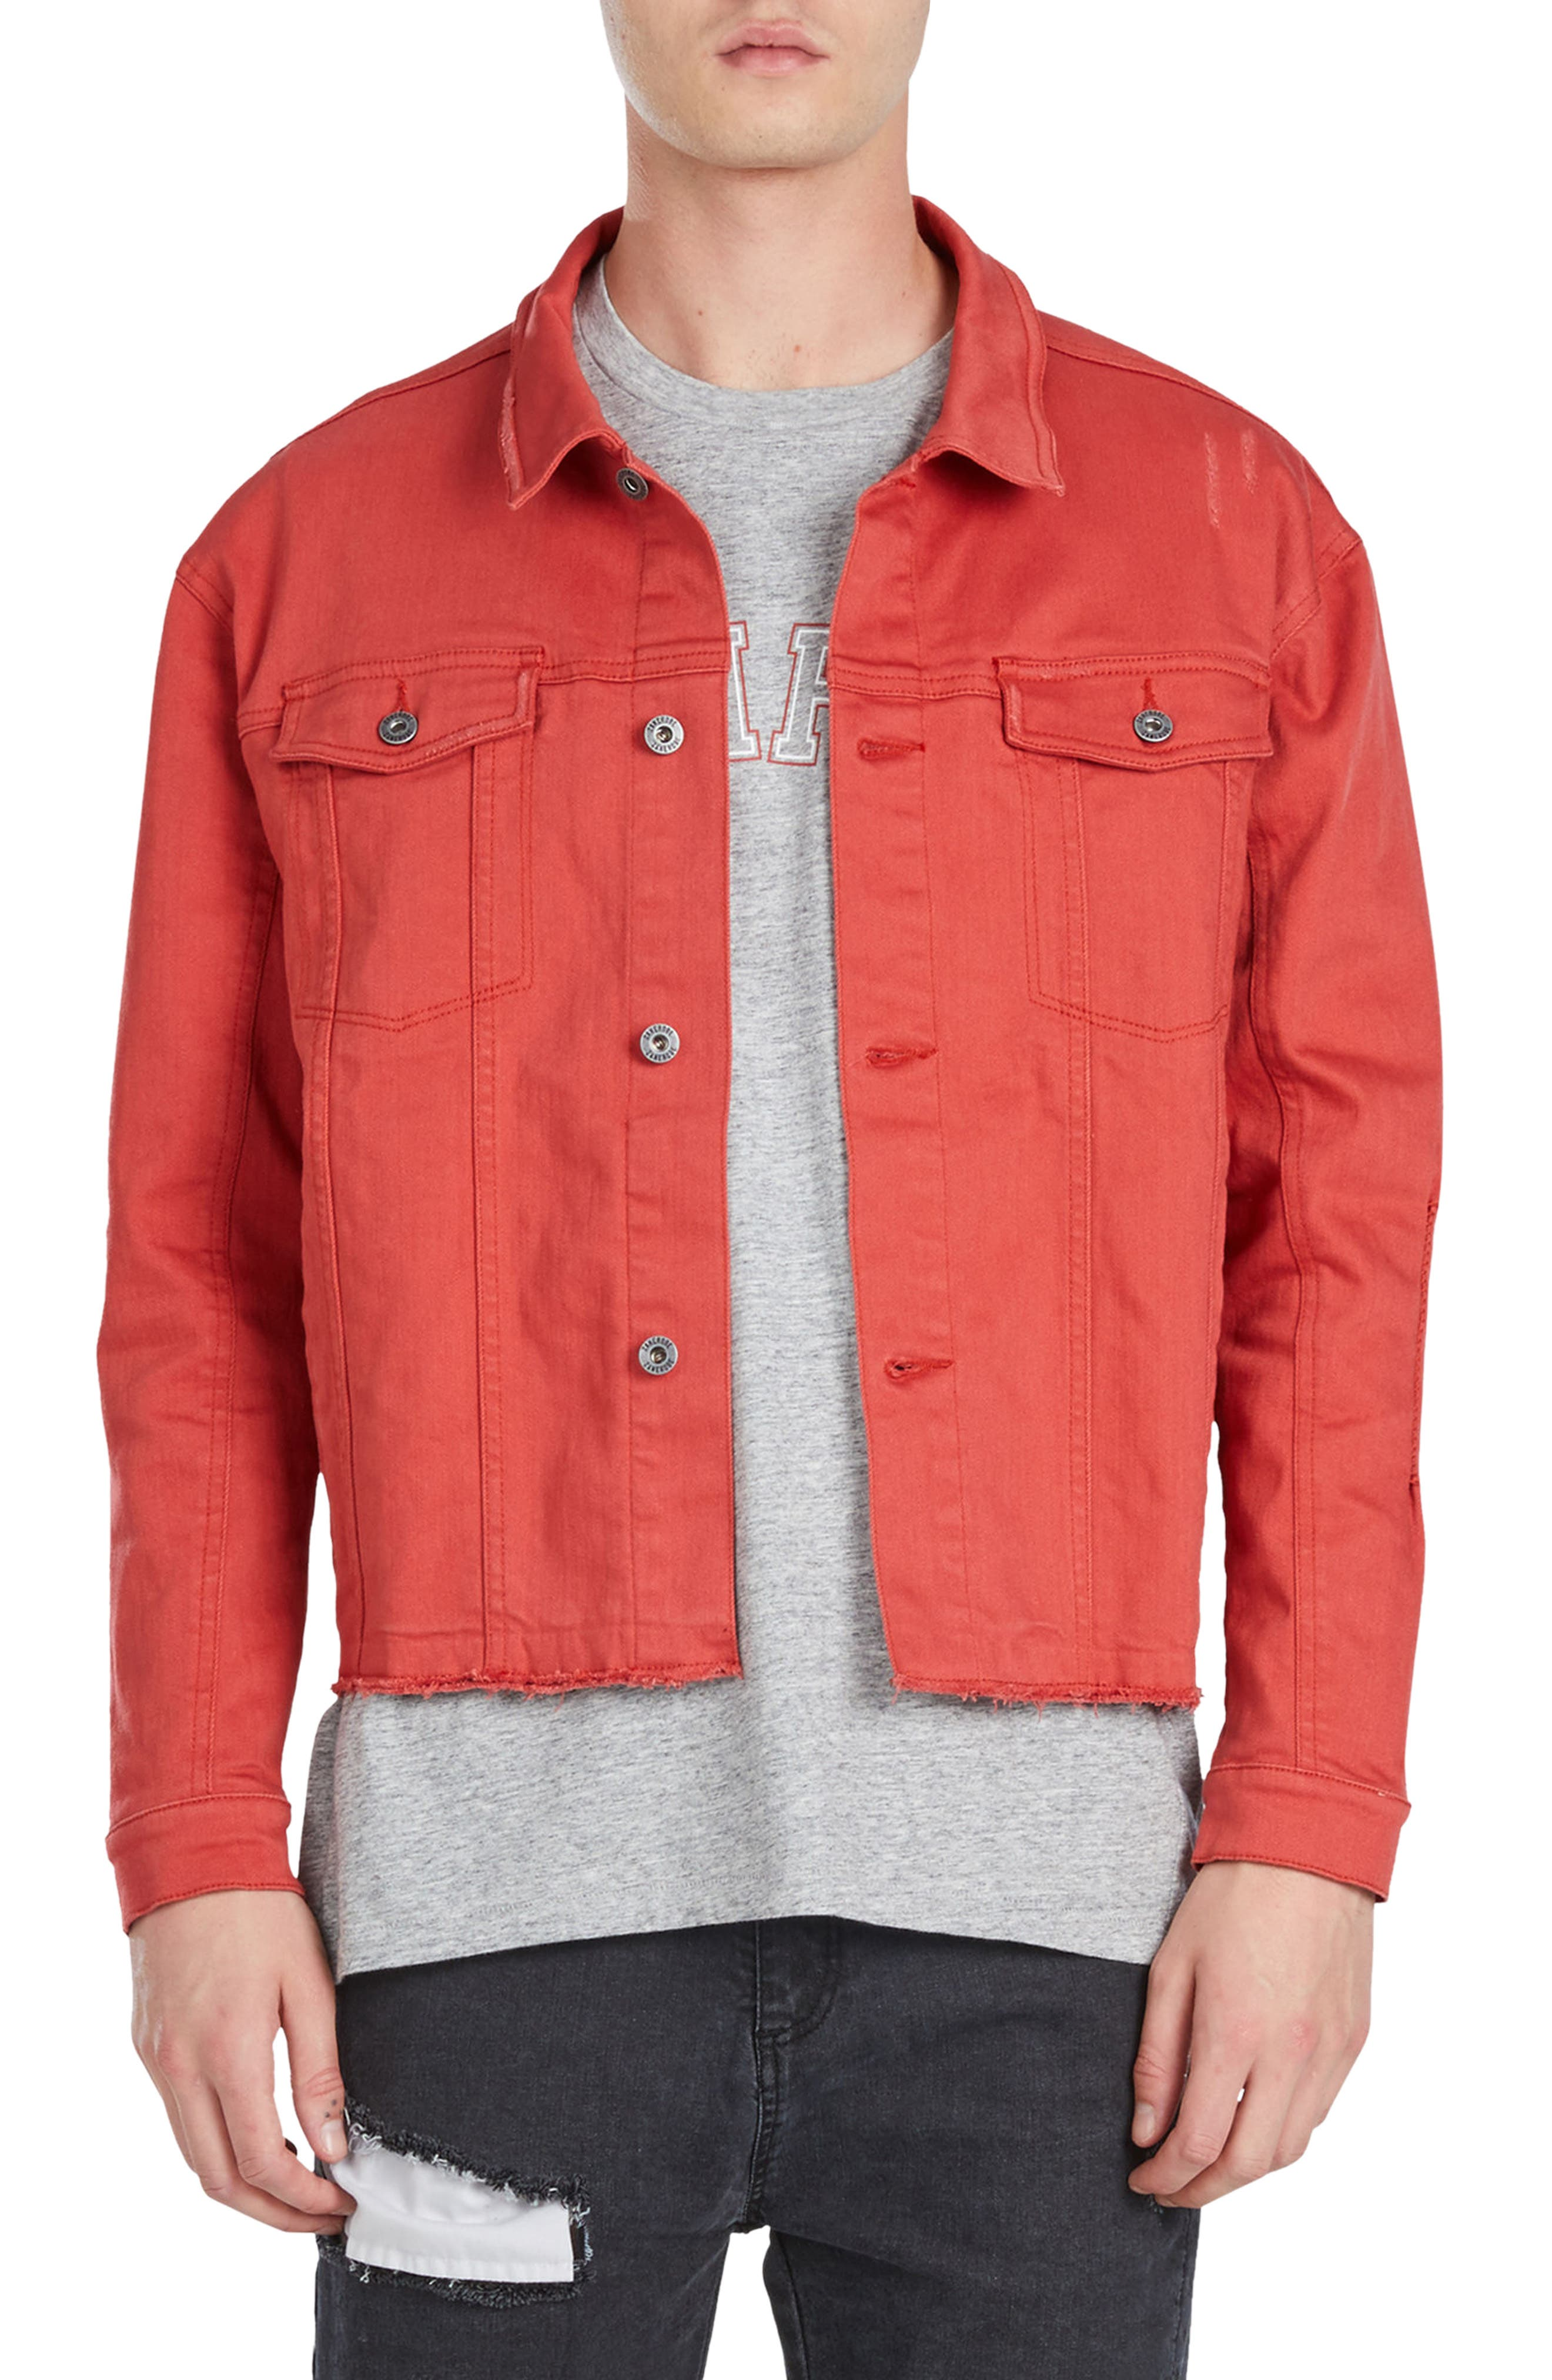 Snitch Denim Jacket,                             Main thumbnail 1, color,                             Vintage Red